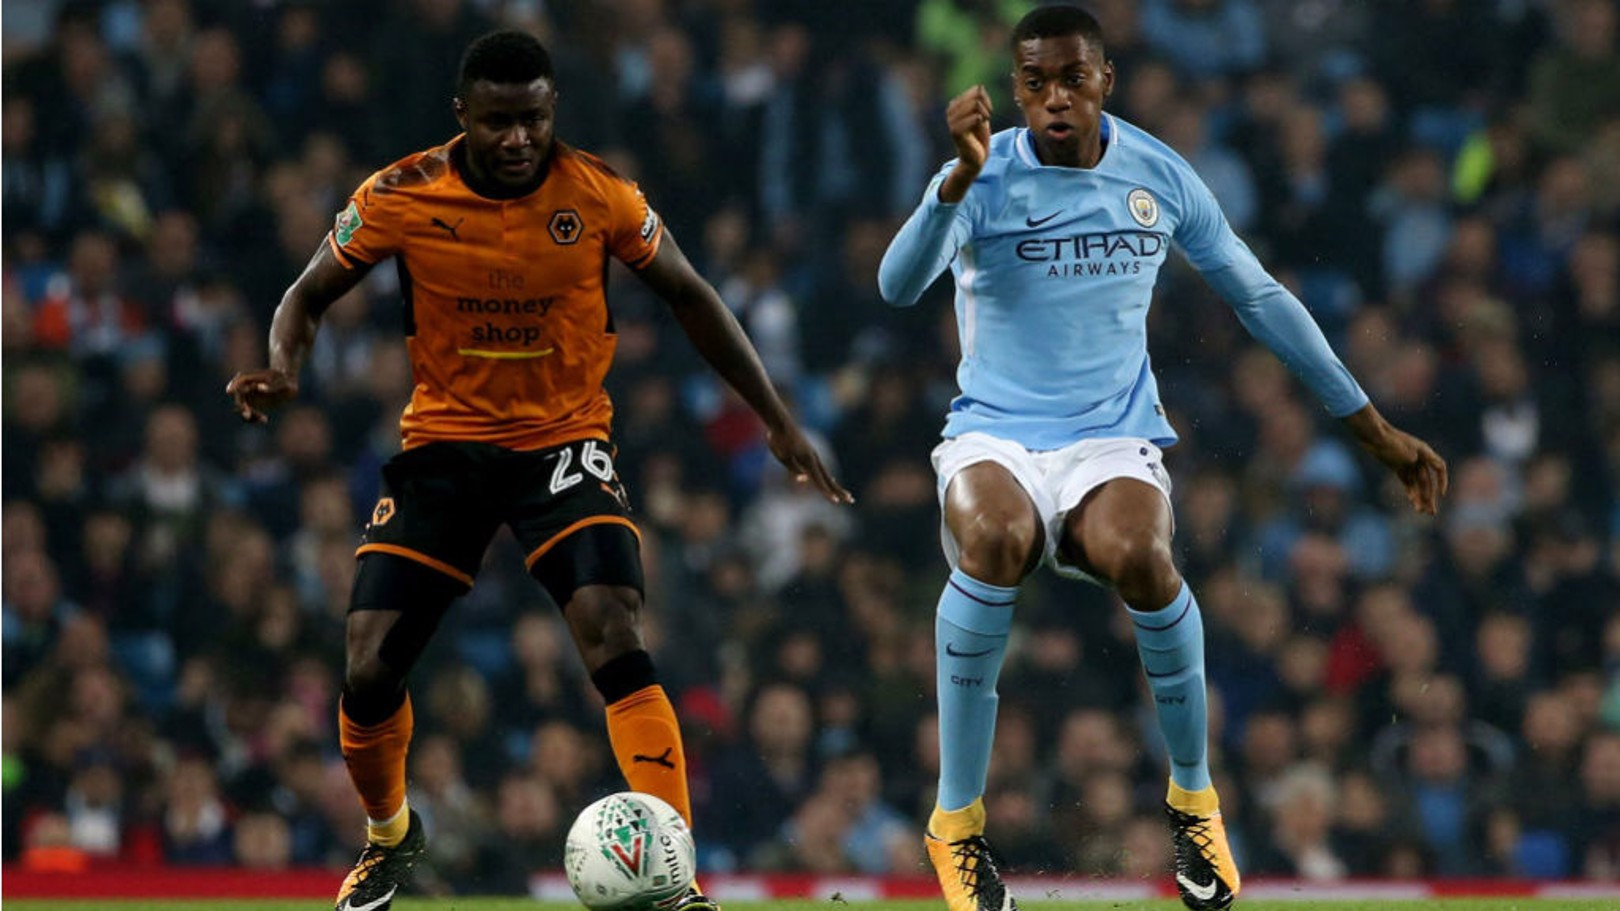 LOAN MOVE: Tosin Adarabioyo will gain valuable first-team experience at West Brom